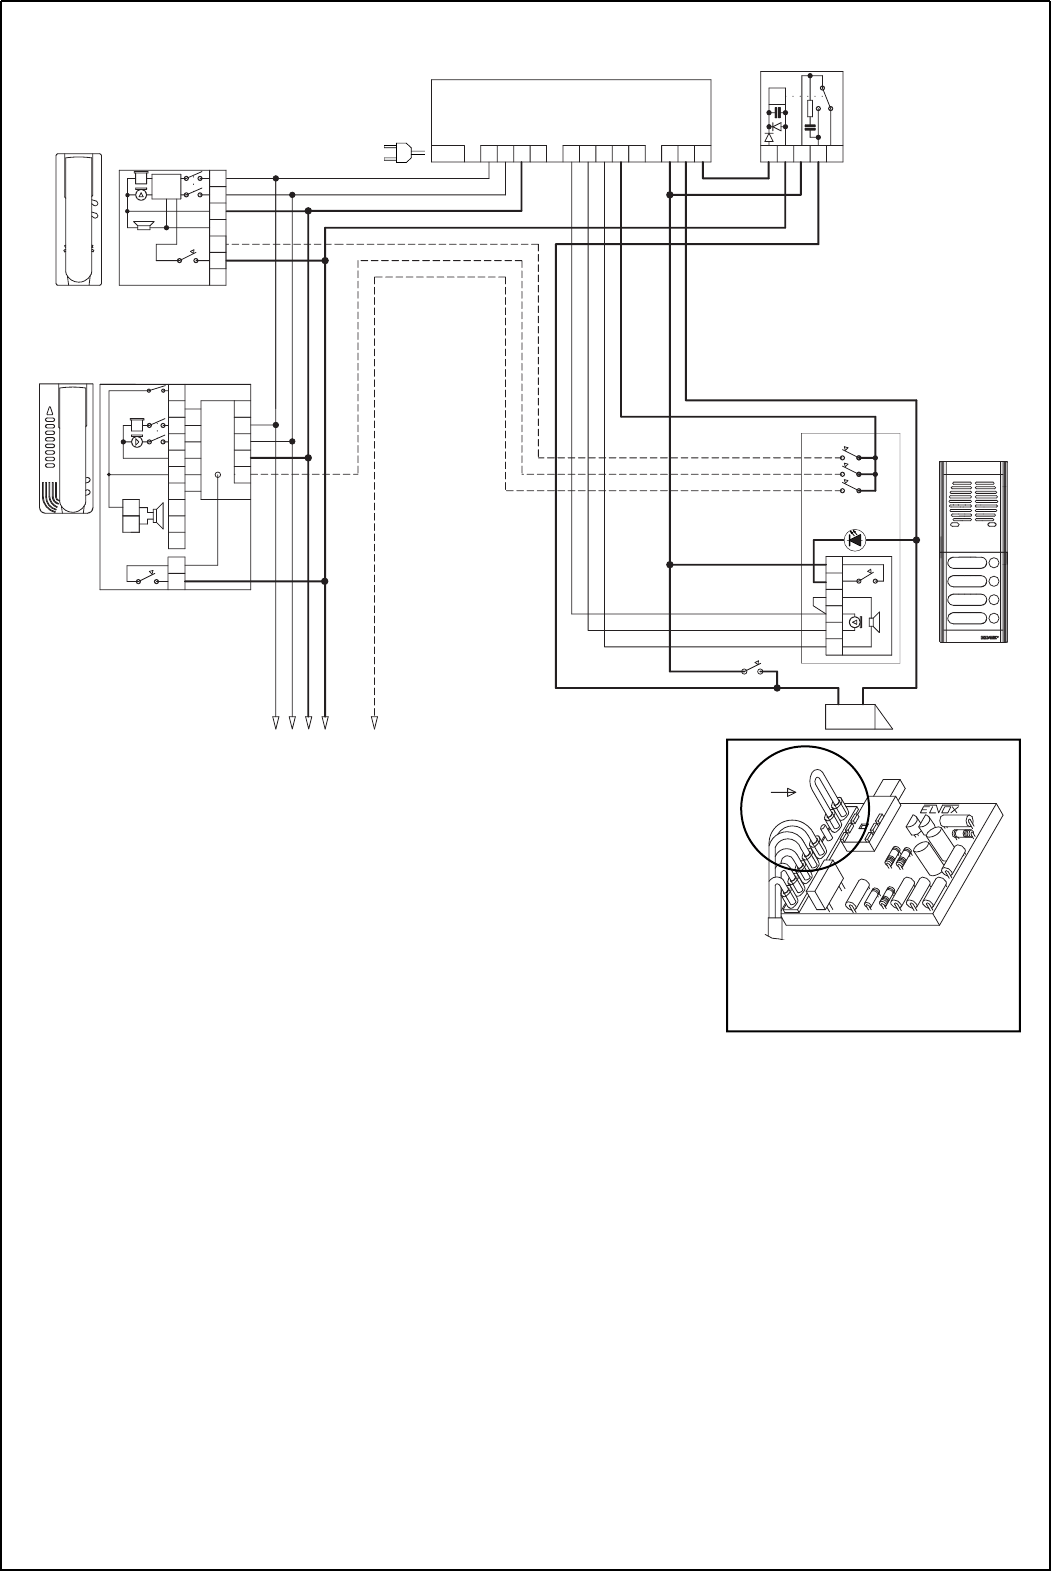 Philips Bodine Bsl310 Wiring Diagram